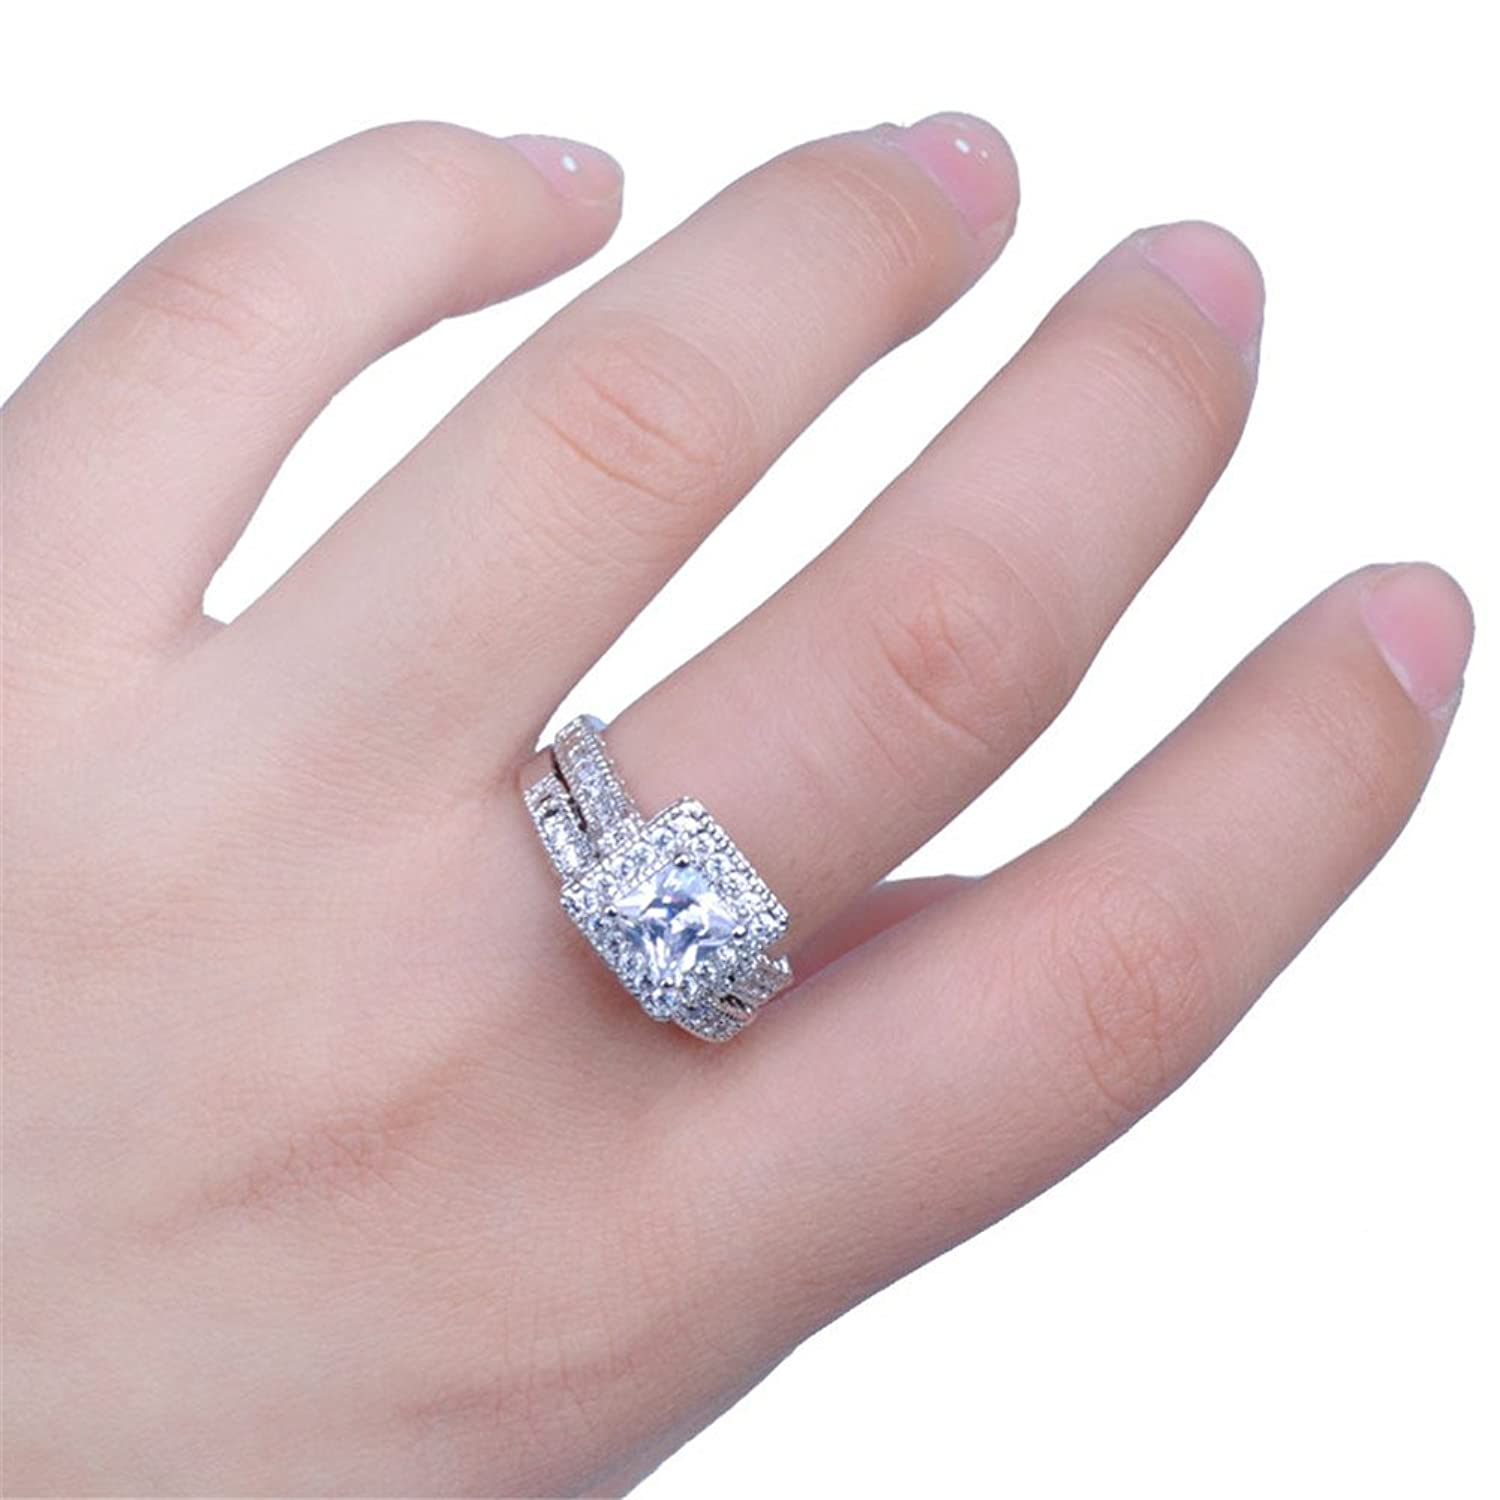 Amazon.com: Junxin Jewelry 6*6MM White Gold Cushion Cut Diamond ...